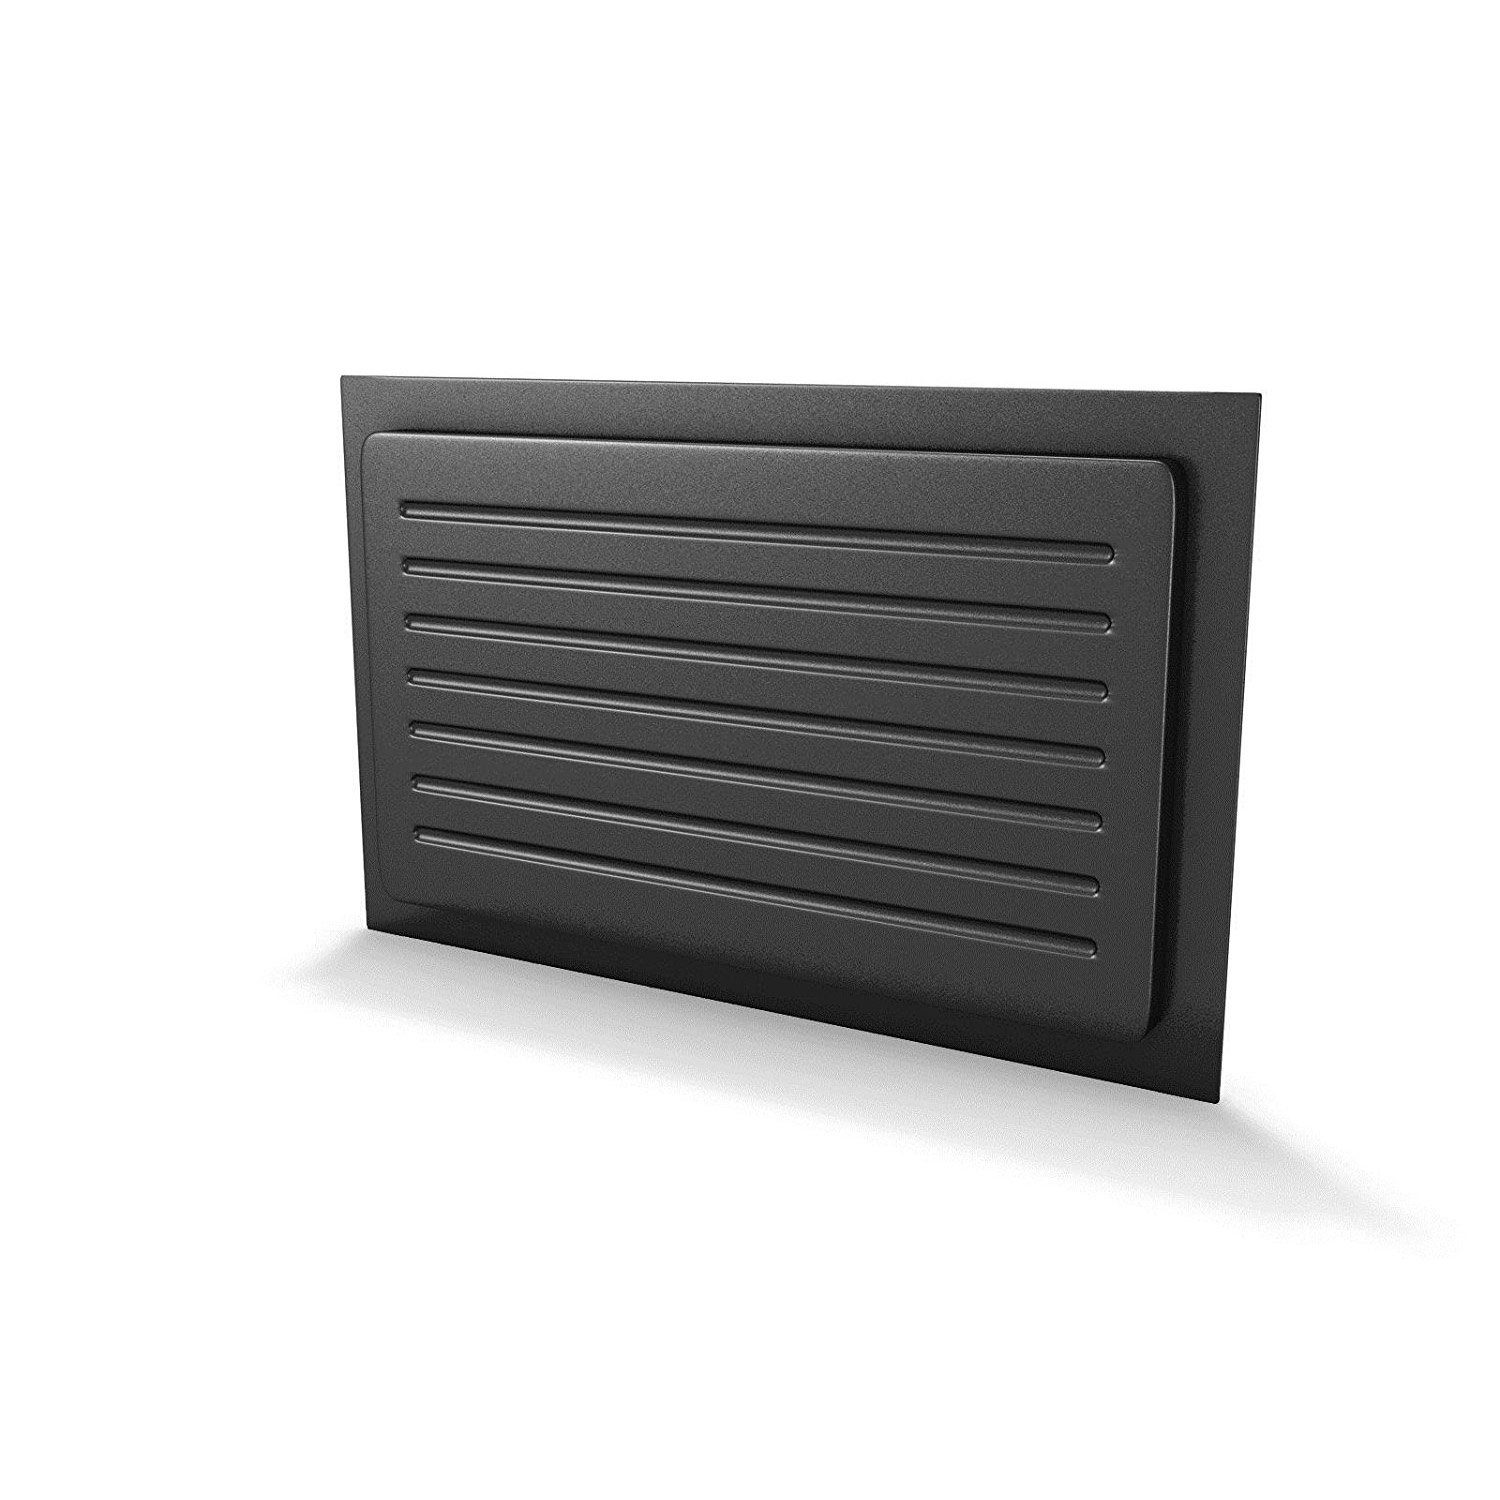 Crawl Space Vent Cover Outward Mounted - Black (13''x21'')